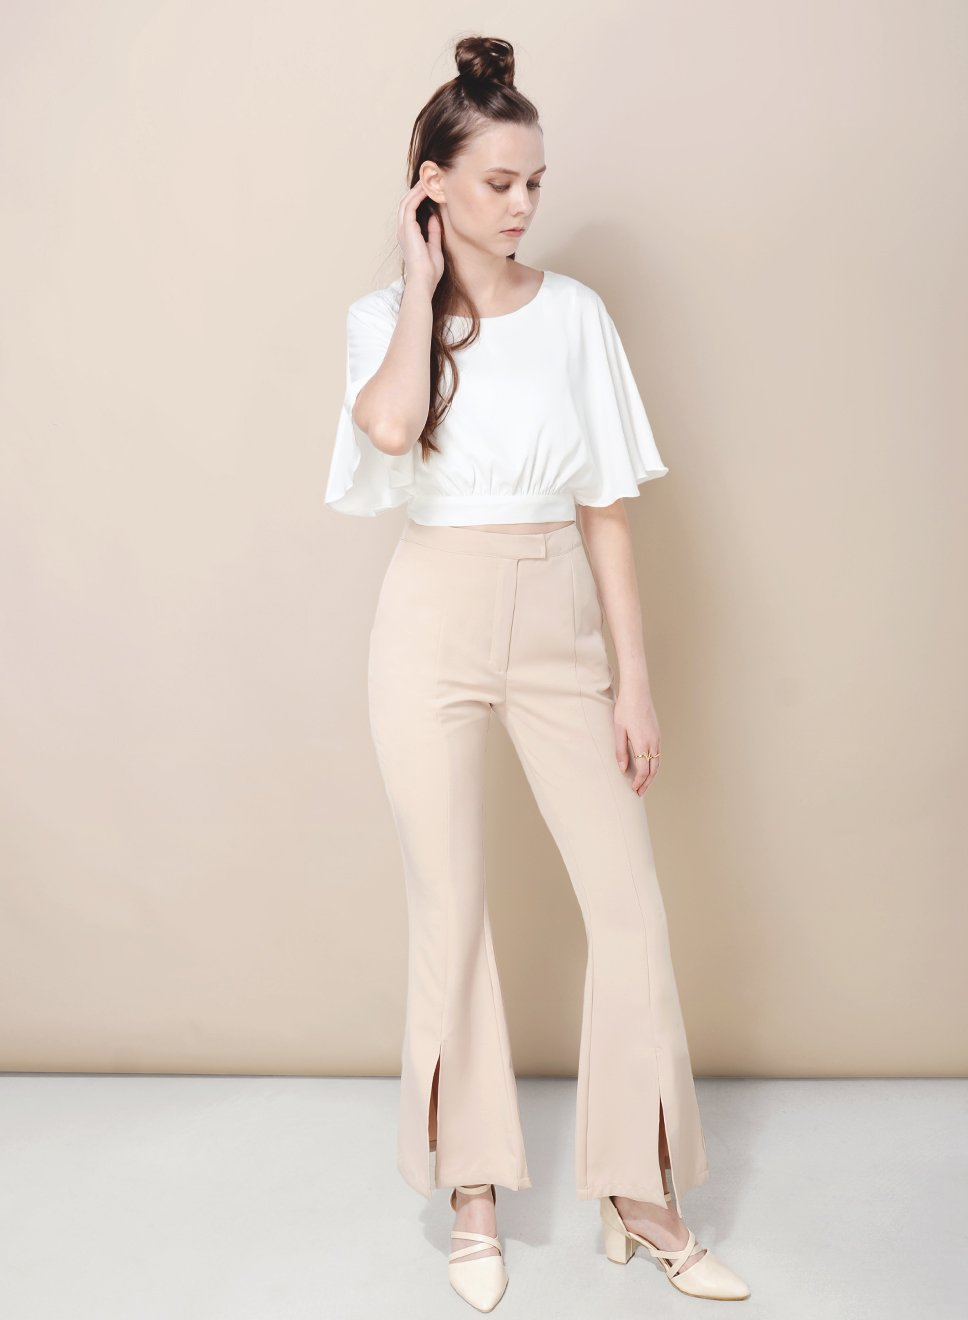 SUNDER split front pants (Sand) at $ 18.50 only sold at And Well Dressed Online Fashion Store Singapore